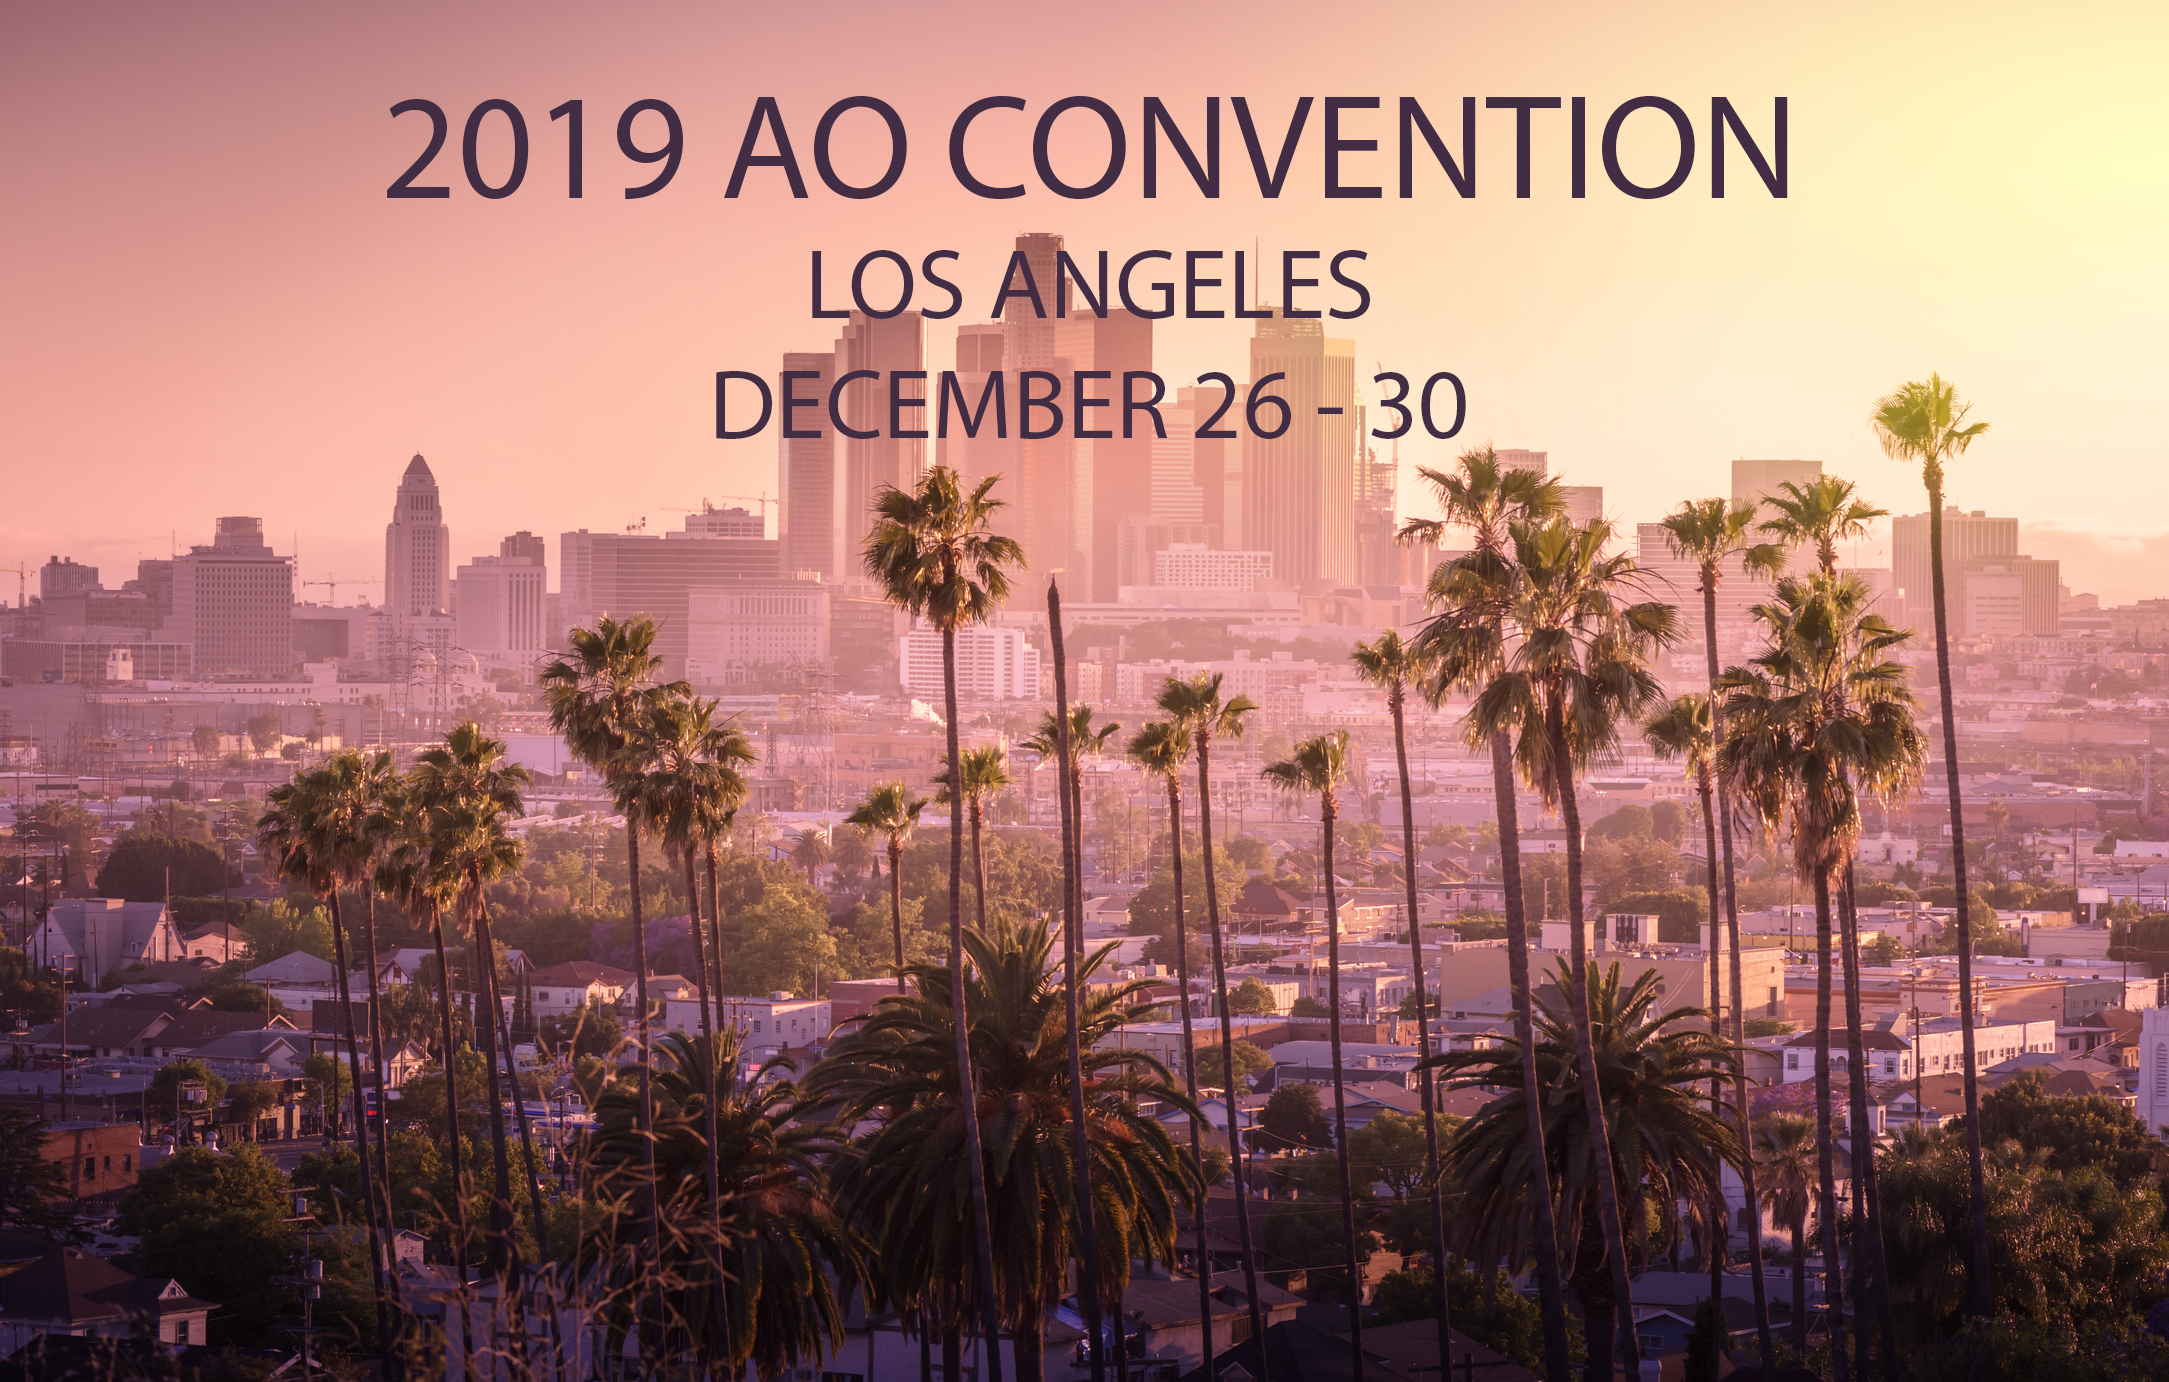 2019 Los Angeles Convention Photo December 26 30